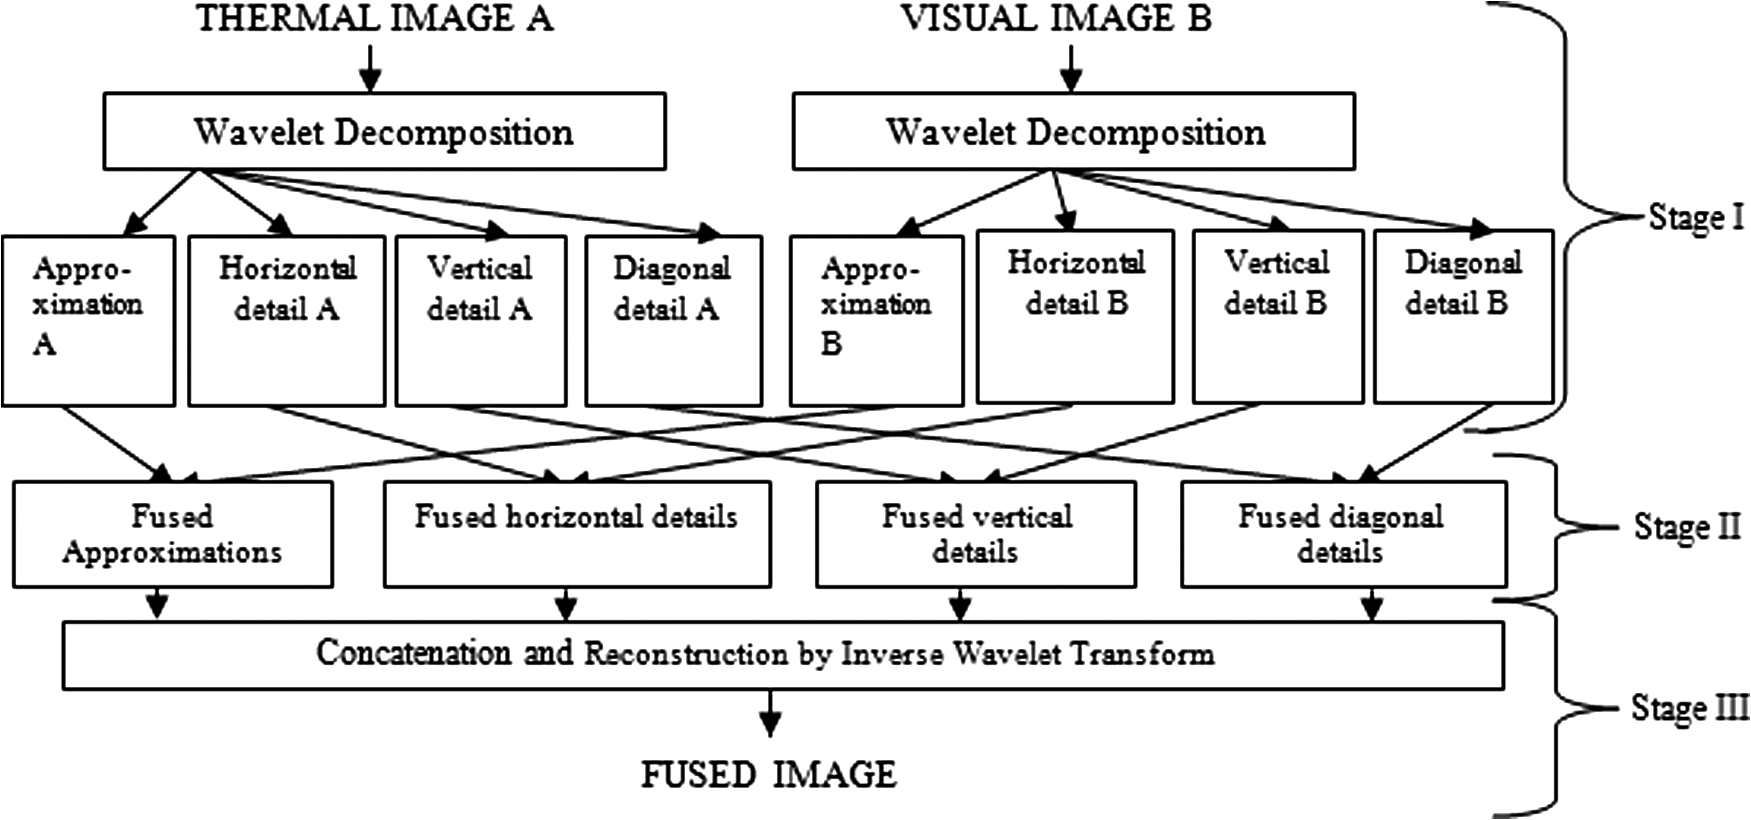 Eye region-based fusion technique of thermal and dark visual images